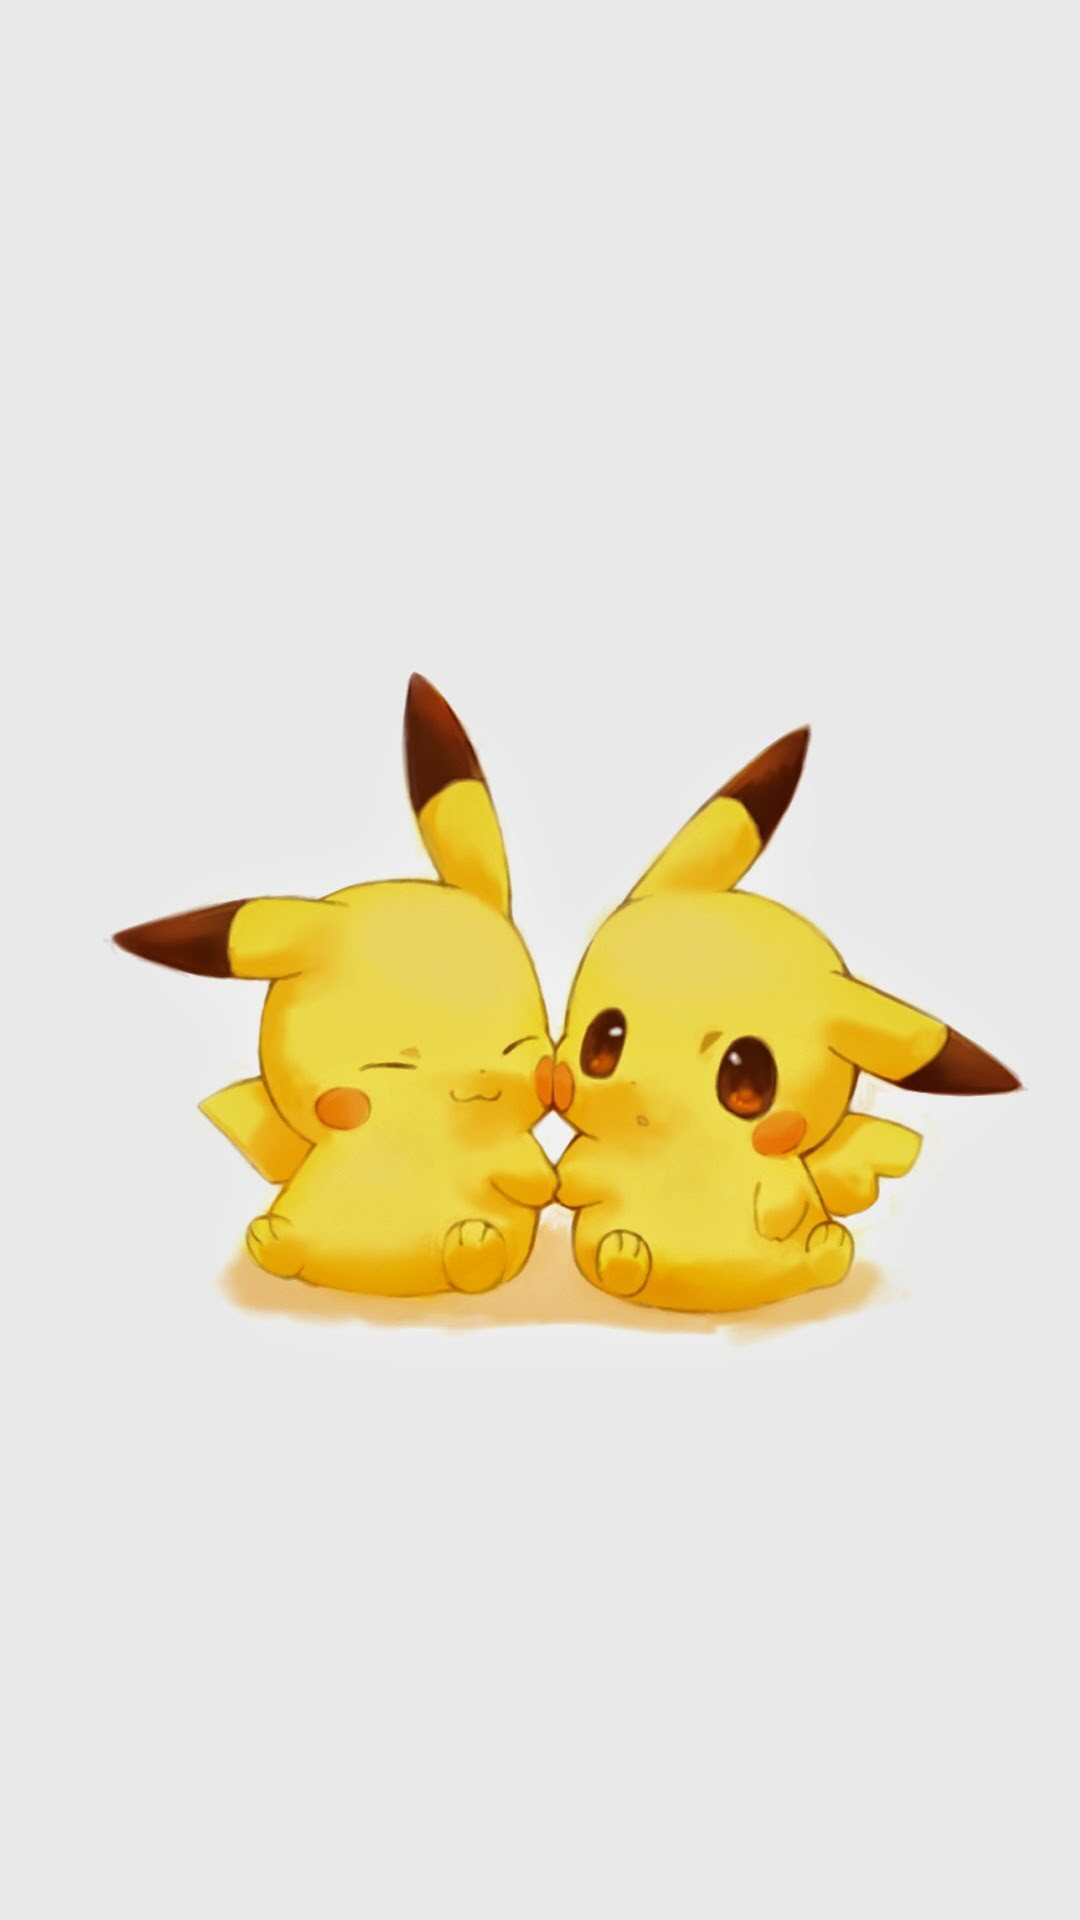 Tap image for more funny cute Pikachu wallpaper! Pikachu – @mobile9    Wallpapers for